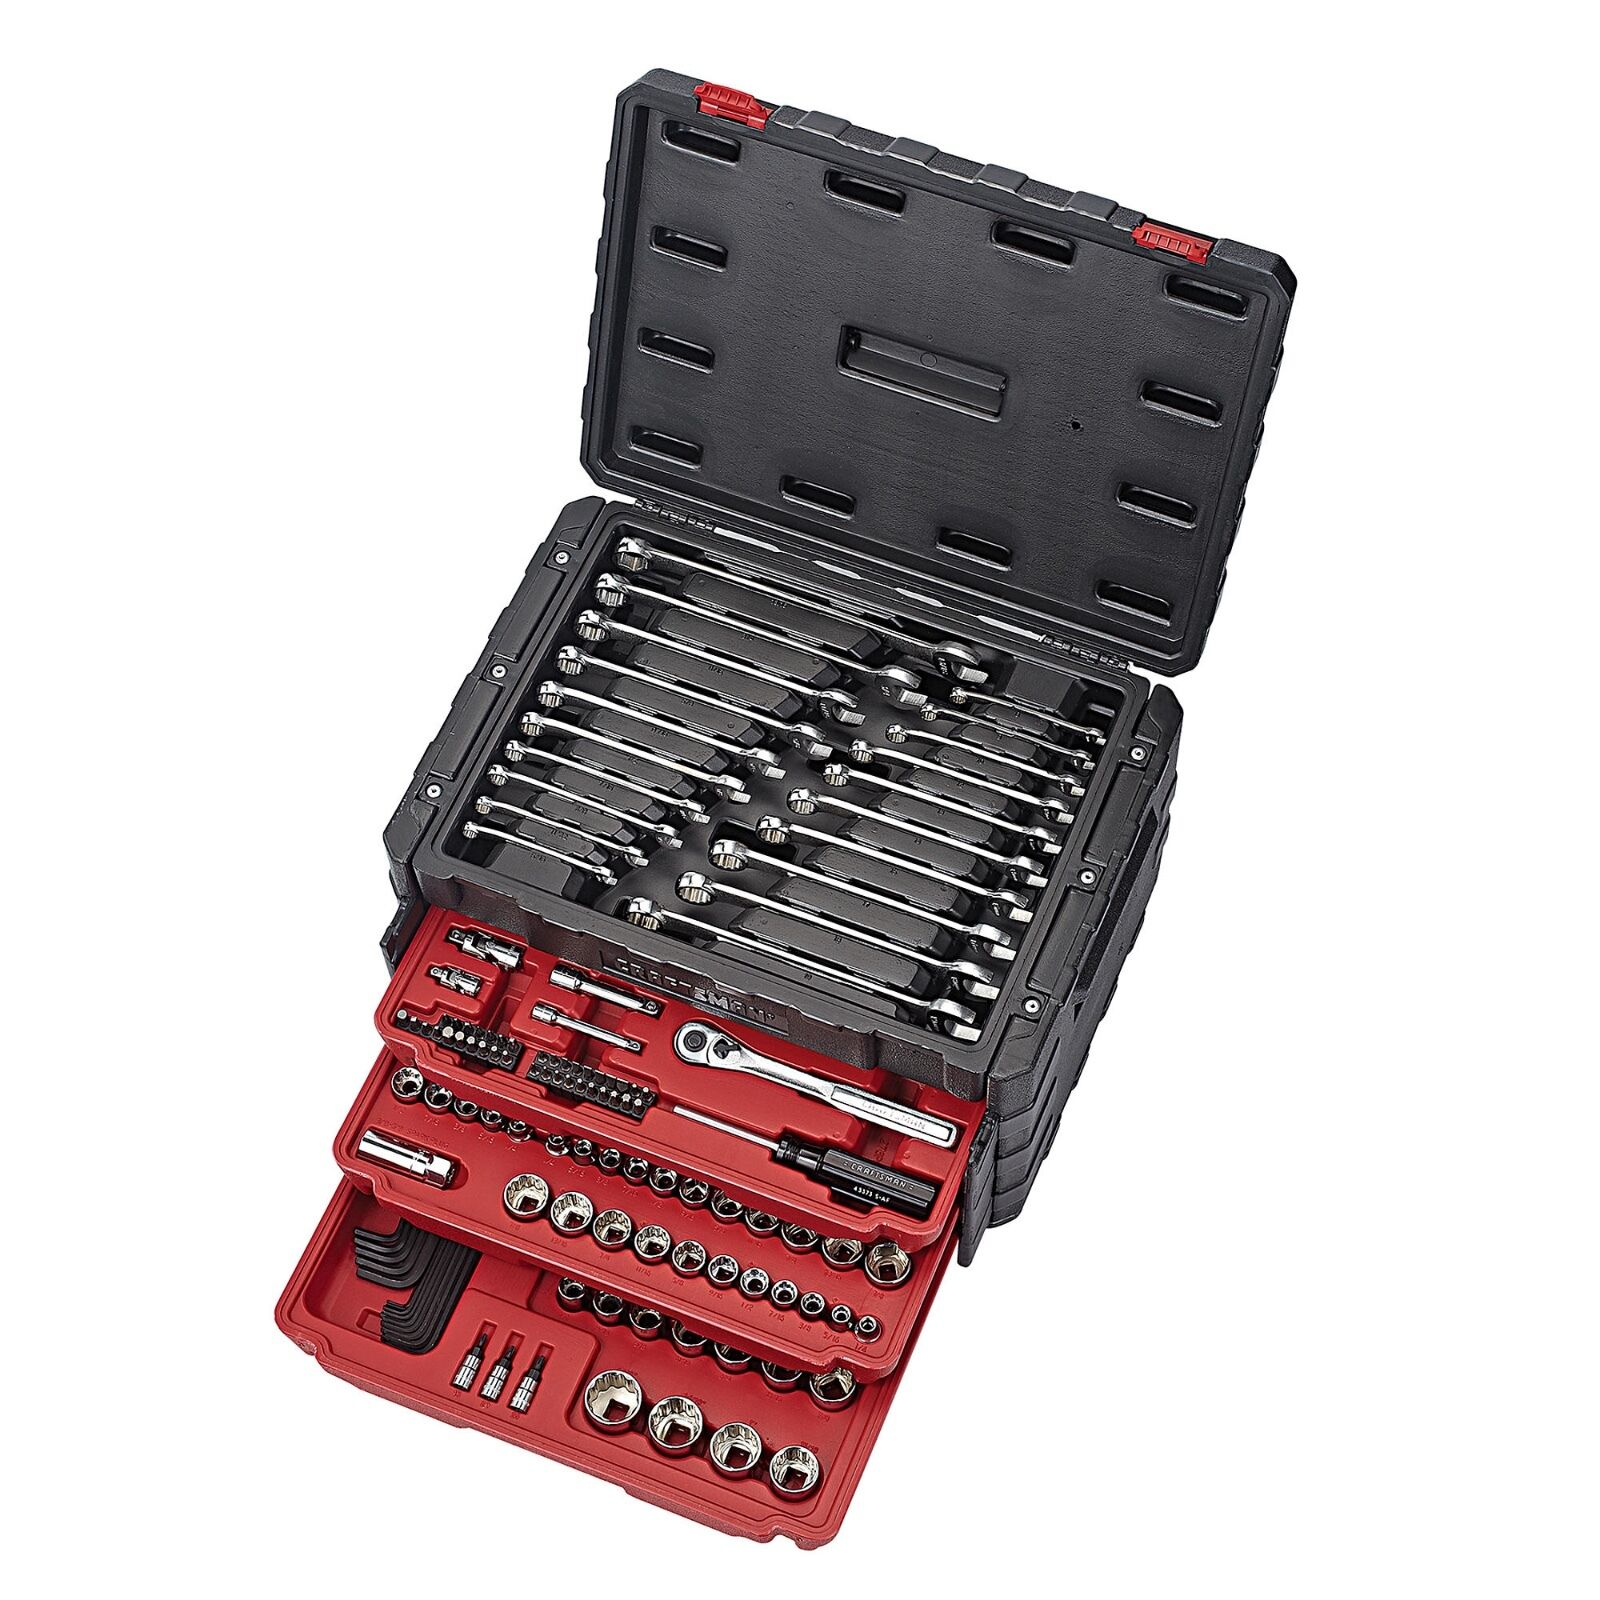 Craftsman 276 pc Mechanic's Tool Set w/ Sturdy Storage Chest